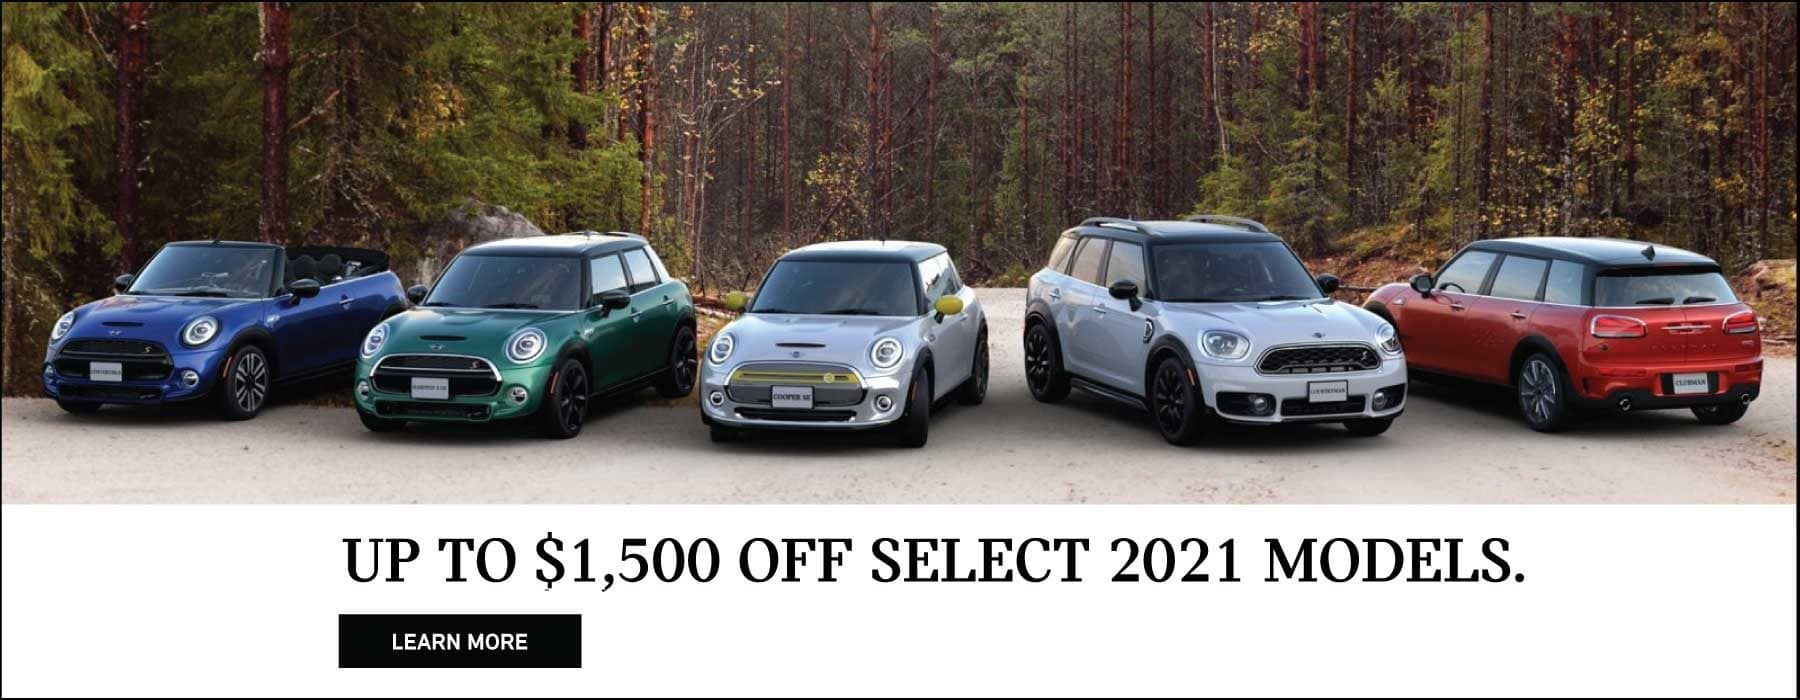 UP TO $1,500 OFF SELECT 2021 MODELS. LEARN MORE BUTTON.